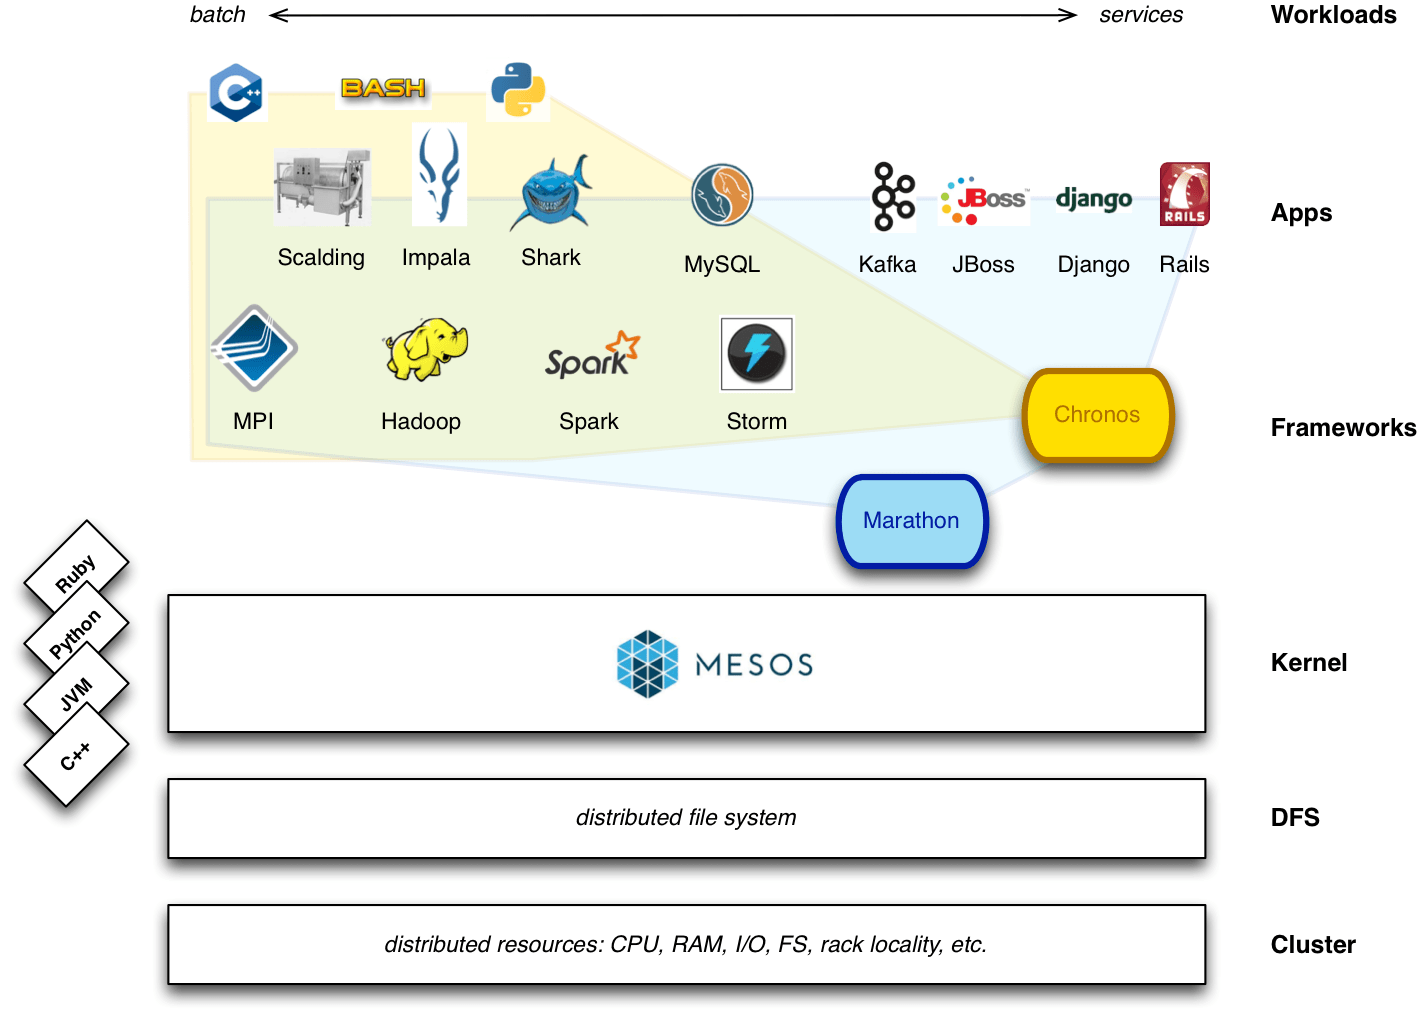 Mesos architecture supports both batch jobs and long-running services/apps. Image Credits Typesafe Blog.